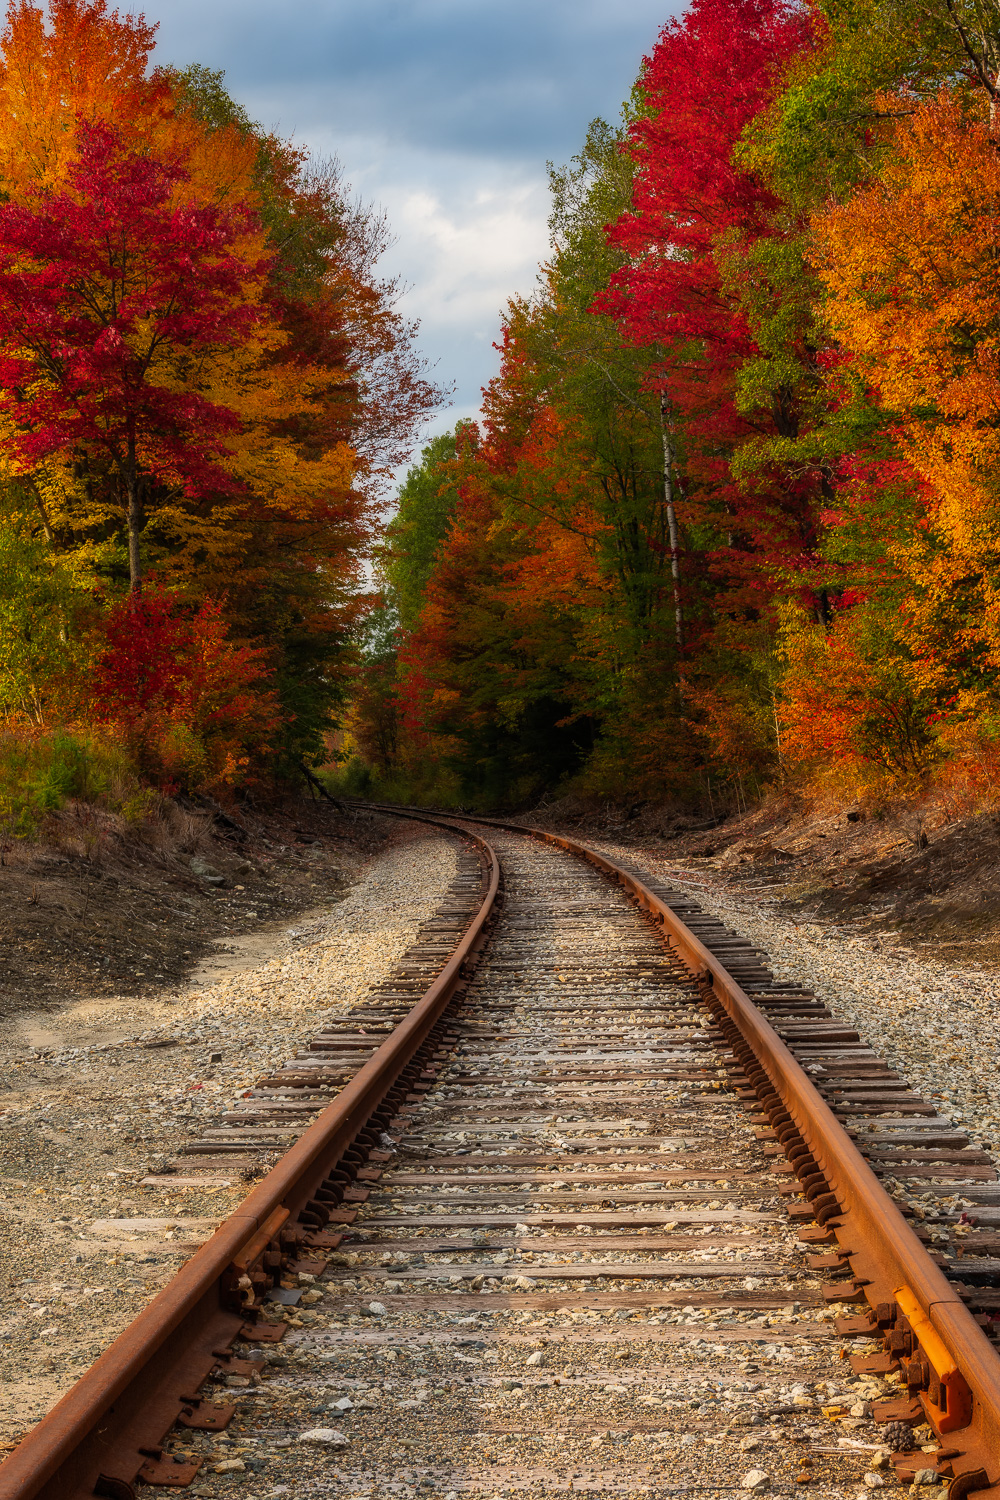 MAB-20200925-NH-JEFFERSON-RAILROAD-FALL-FOLIAGE-71126.jpg